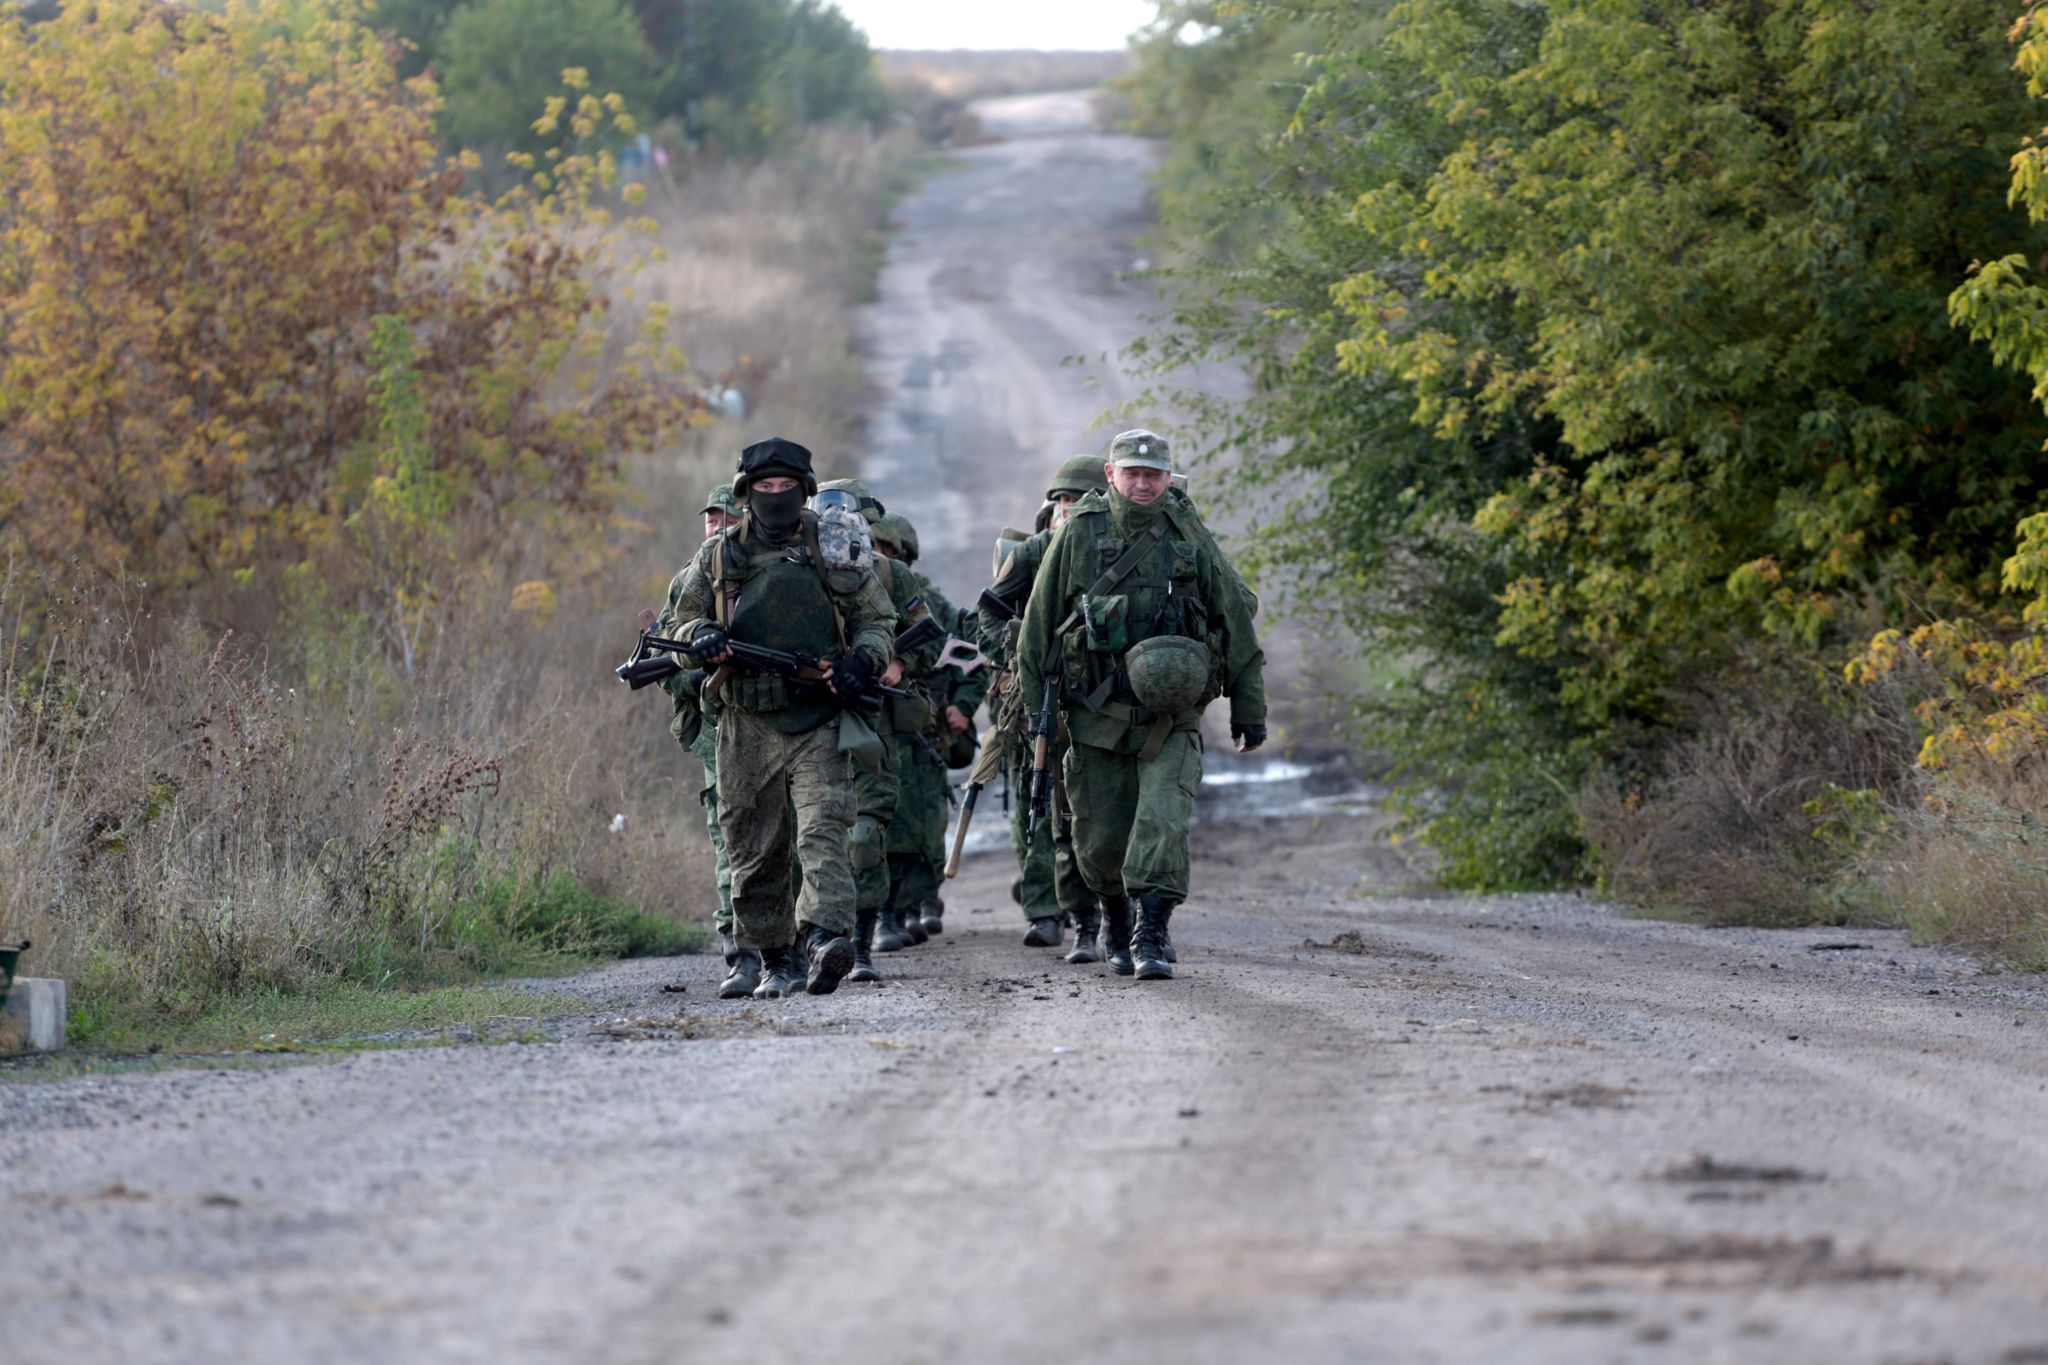 Pro-Russian separatists troops leave their position during withdrawal in the village of Petrovske, some 50 km from Donetsk, on 3 October, 2016